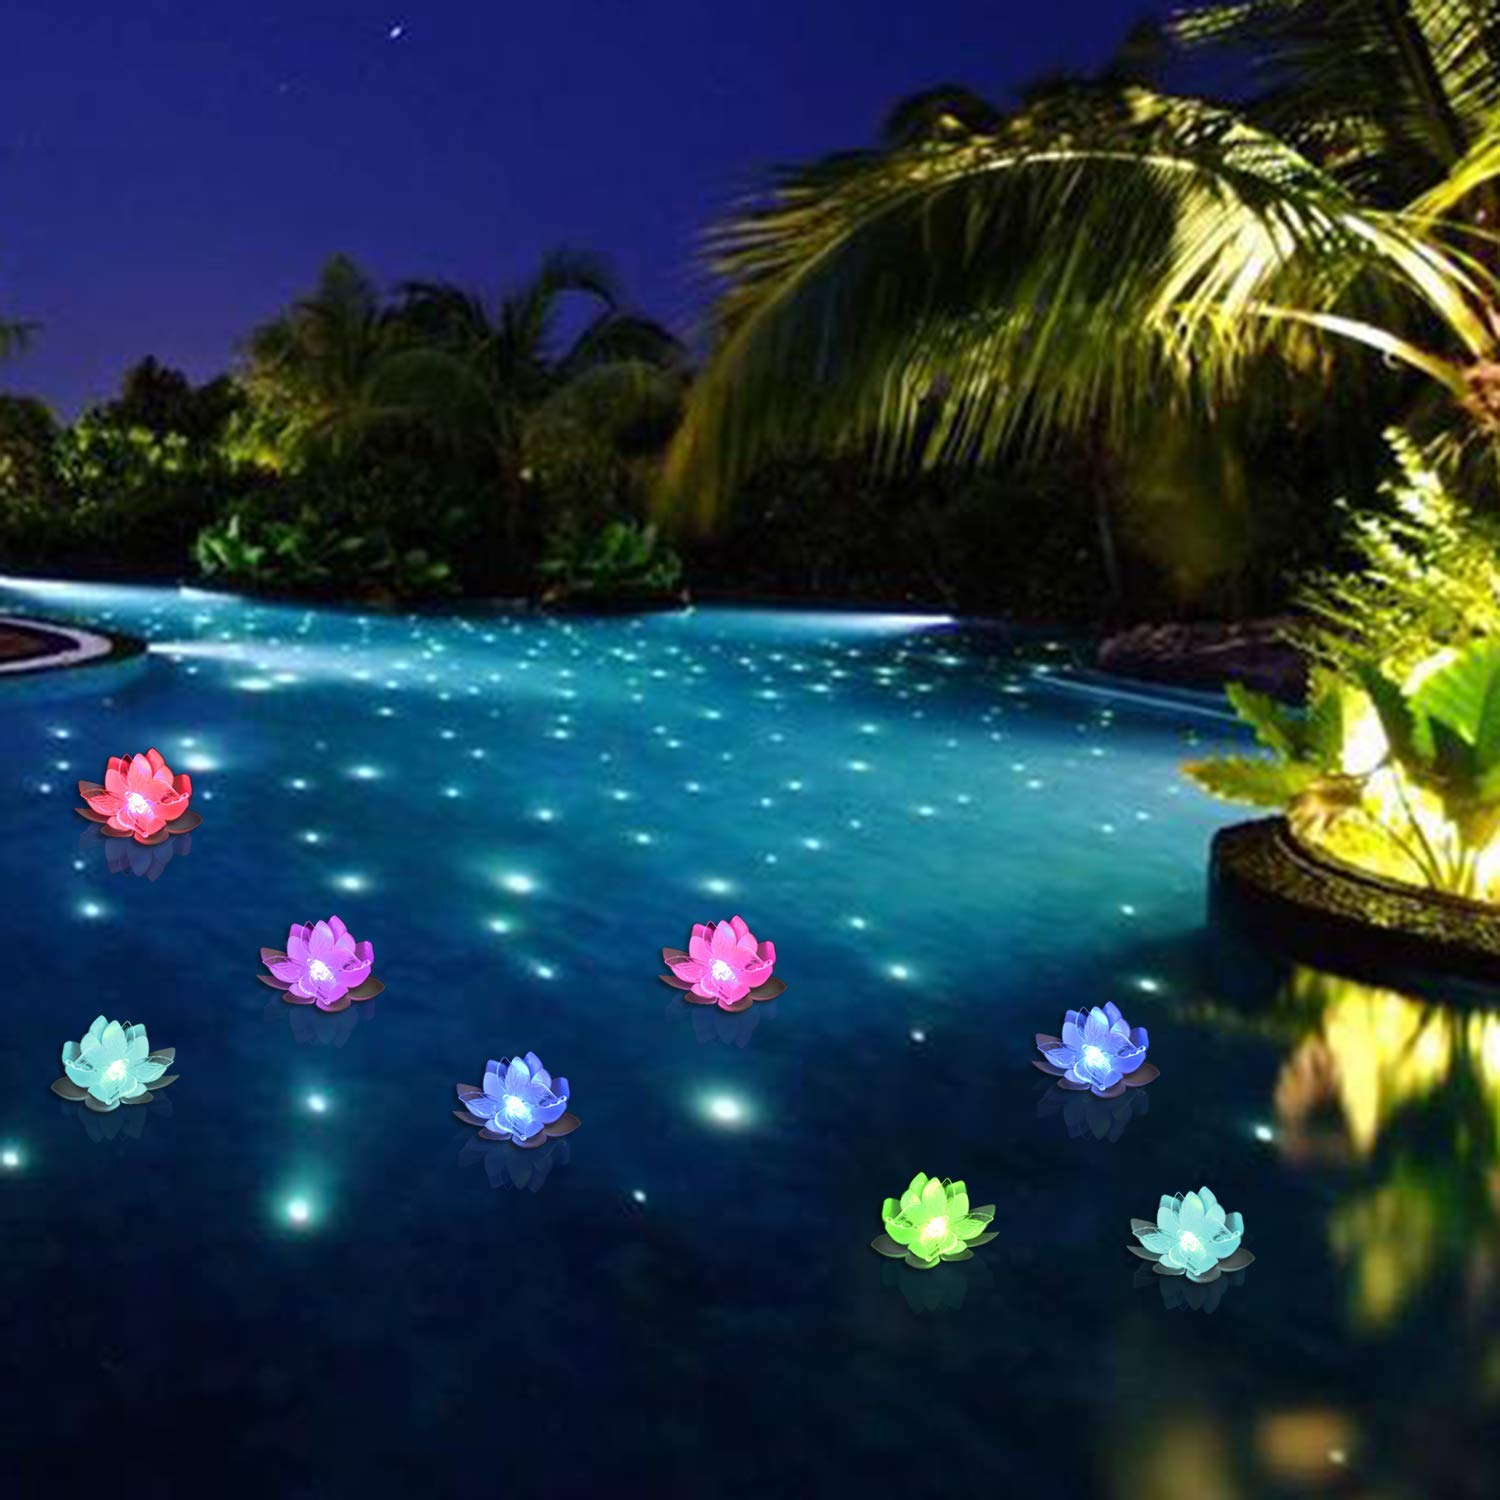 Floating Pool Lights,LED Pool Lights,Color-Changing Flower Lotus Night  Lights for Centerpieces, Pool Decoration 6 Pcs (Butterfly)